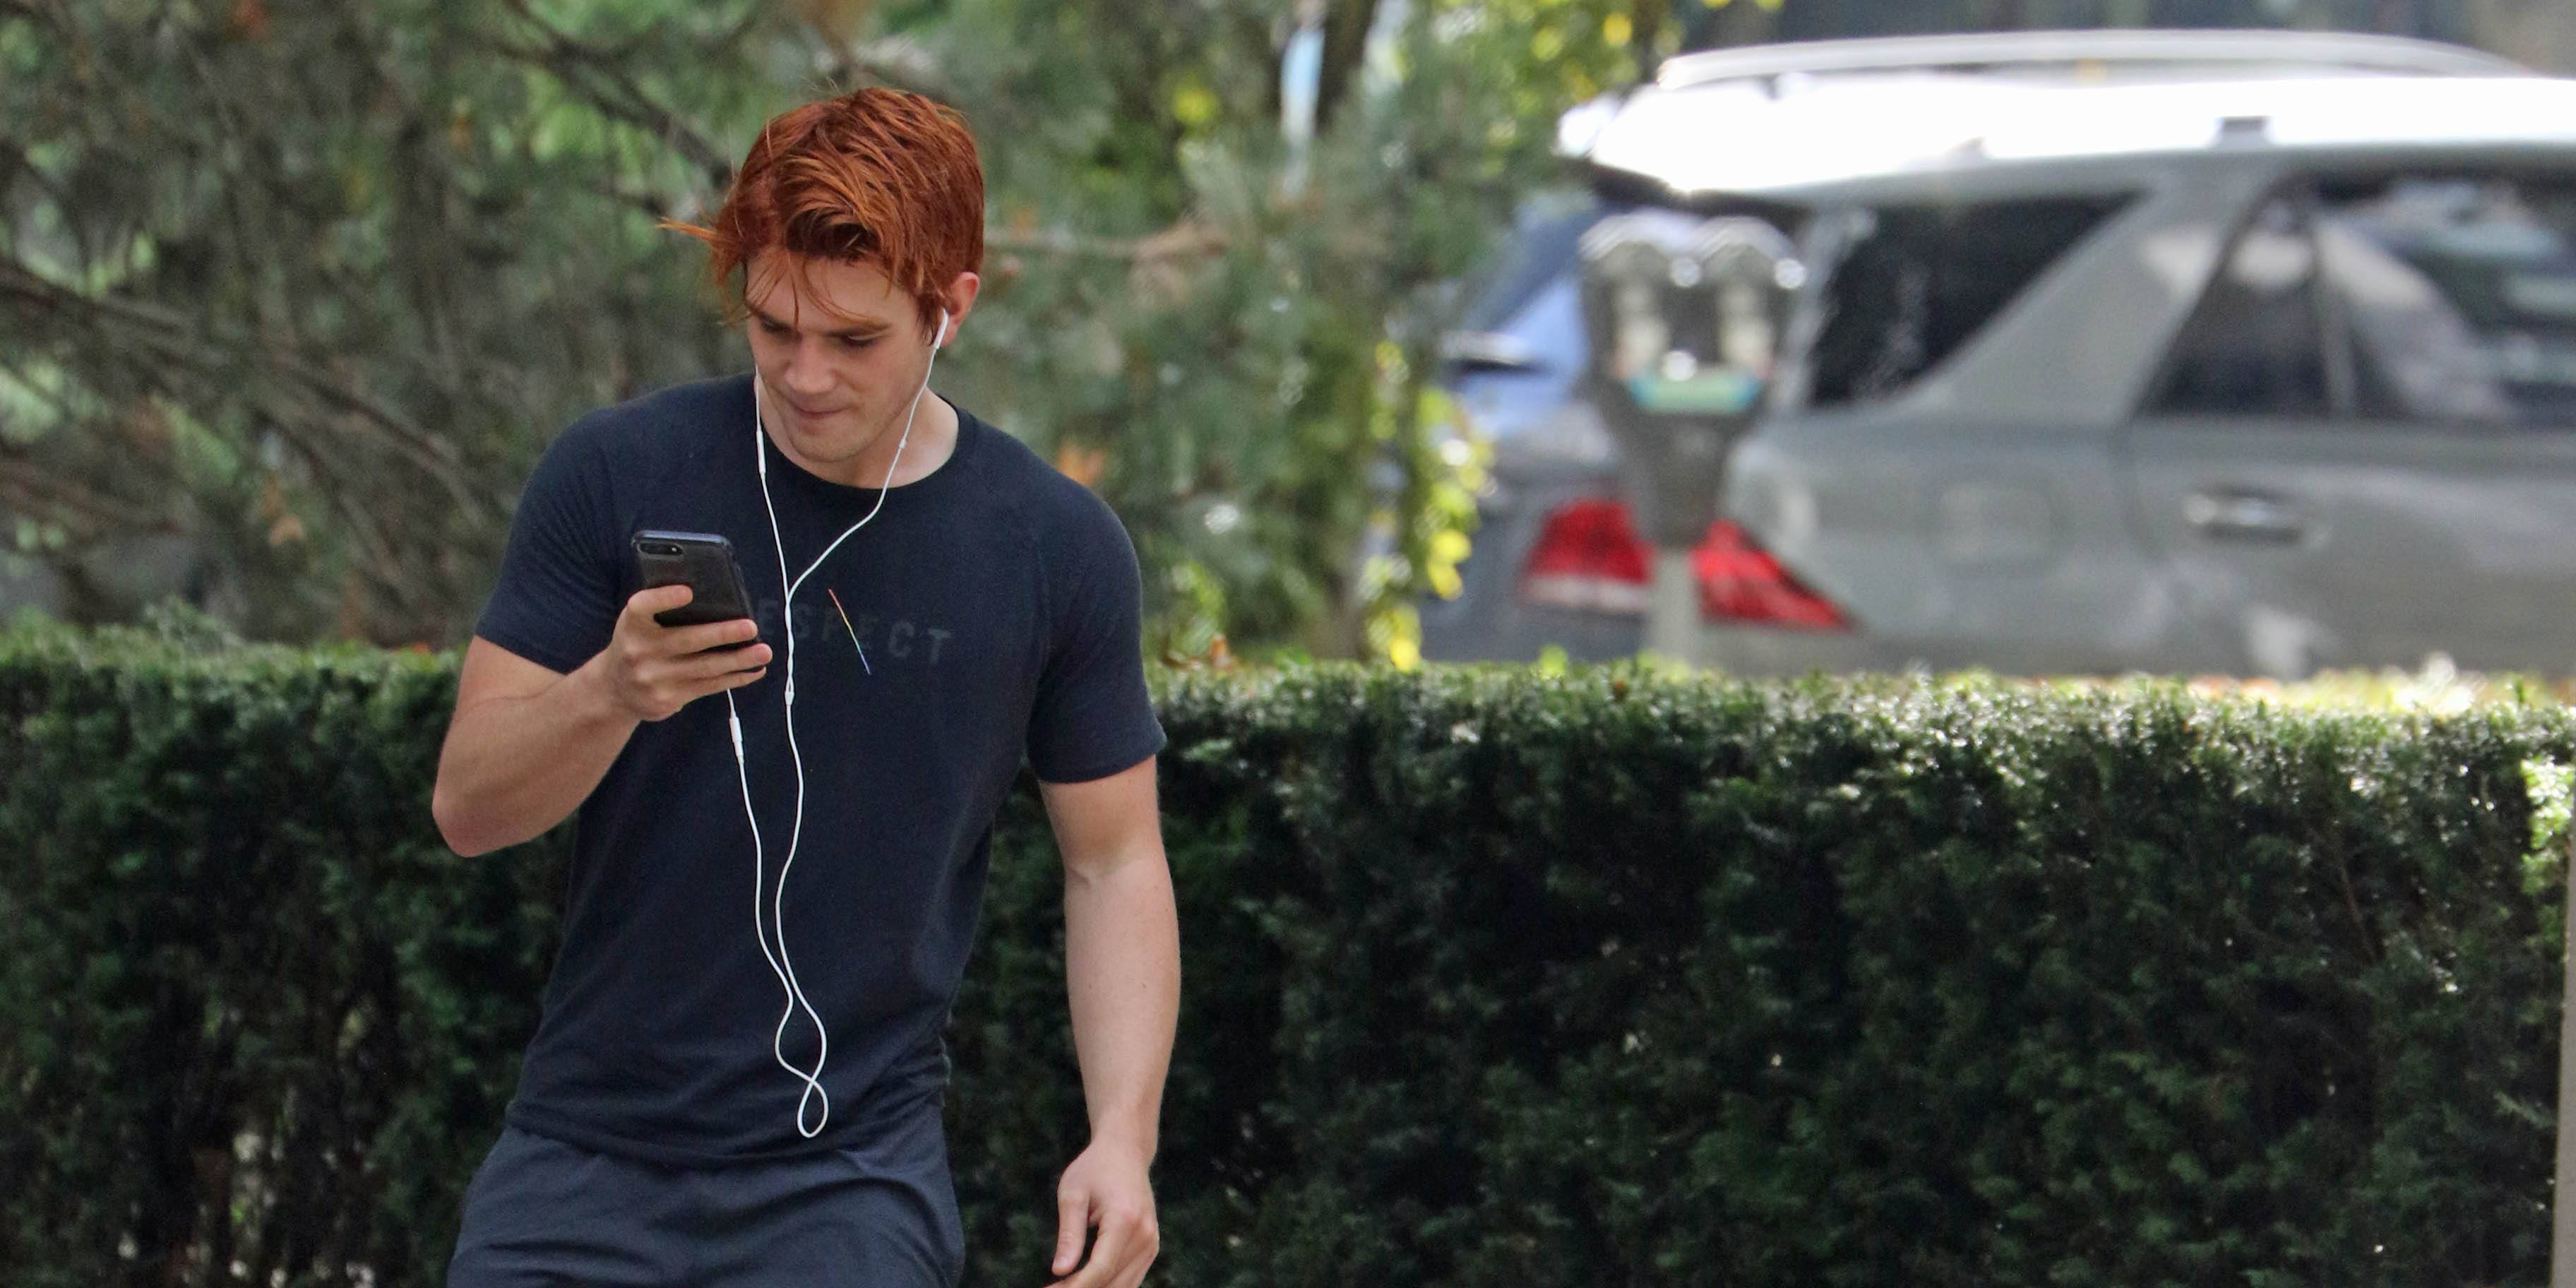 Riverdale's KJ Apa and Charles Melton spotted working out in Vancouver (PHOTOS)